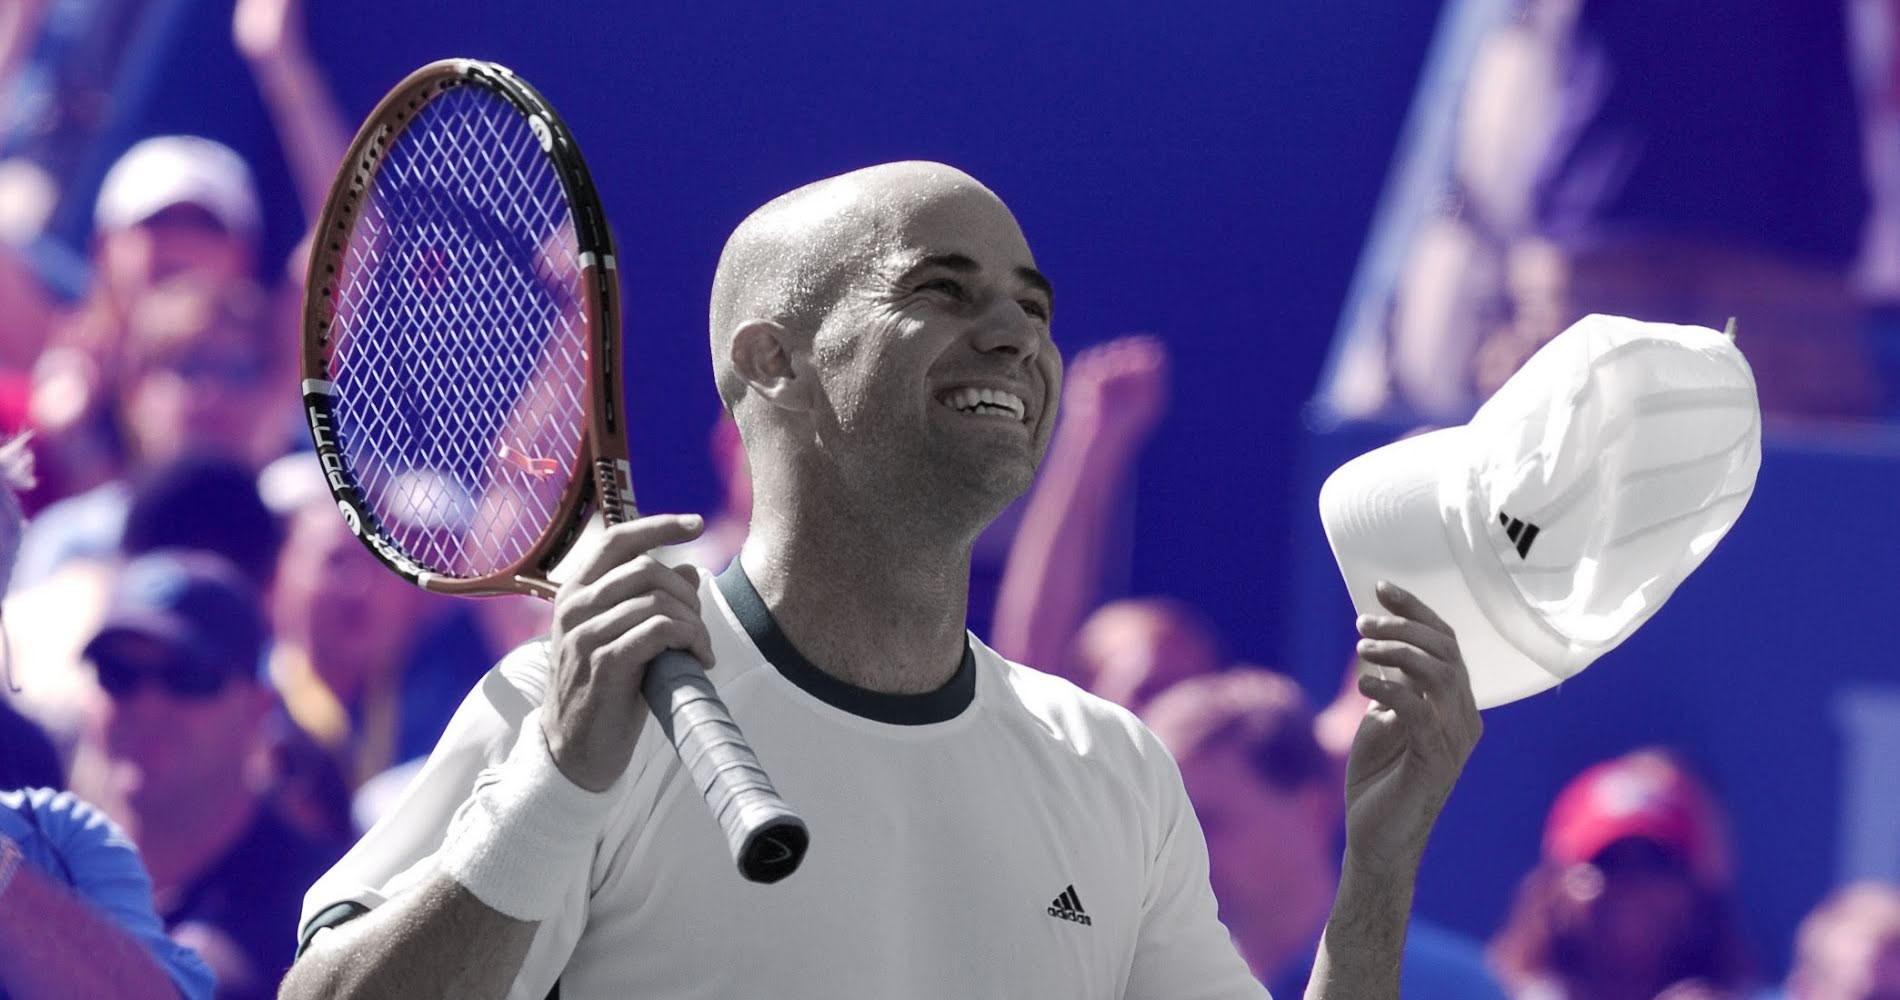 Andre Agassi, On this day 07/31